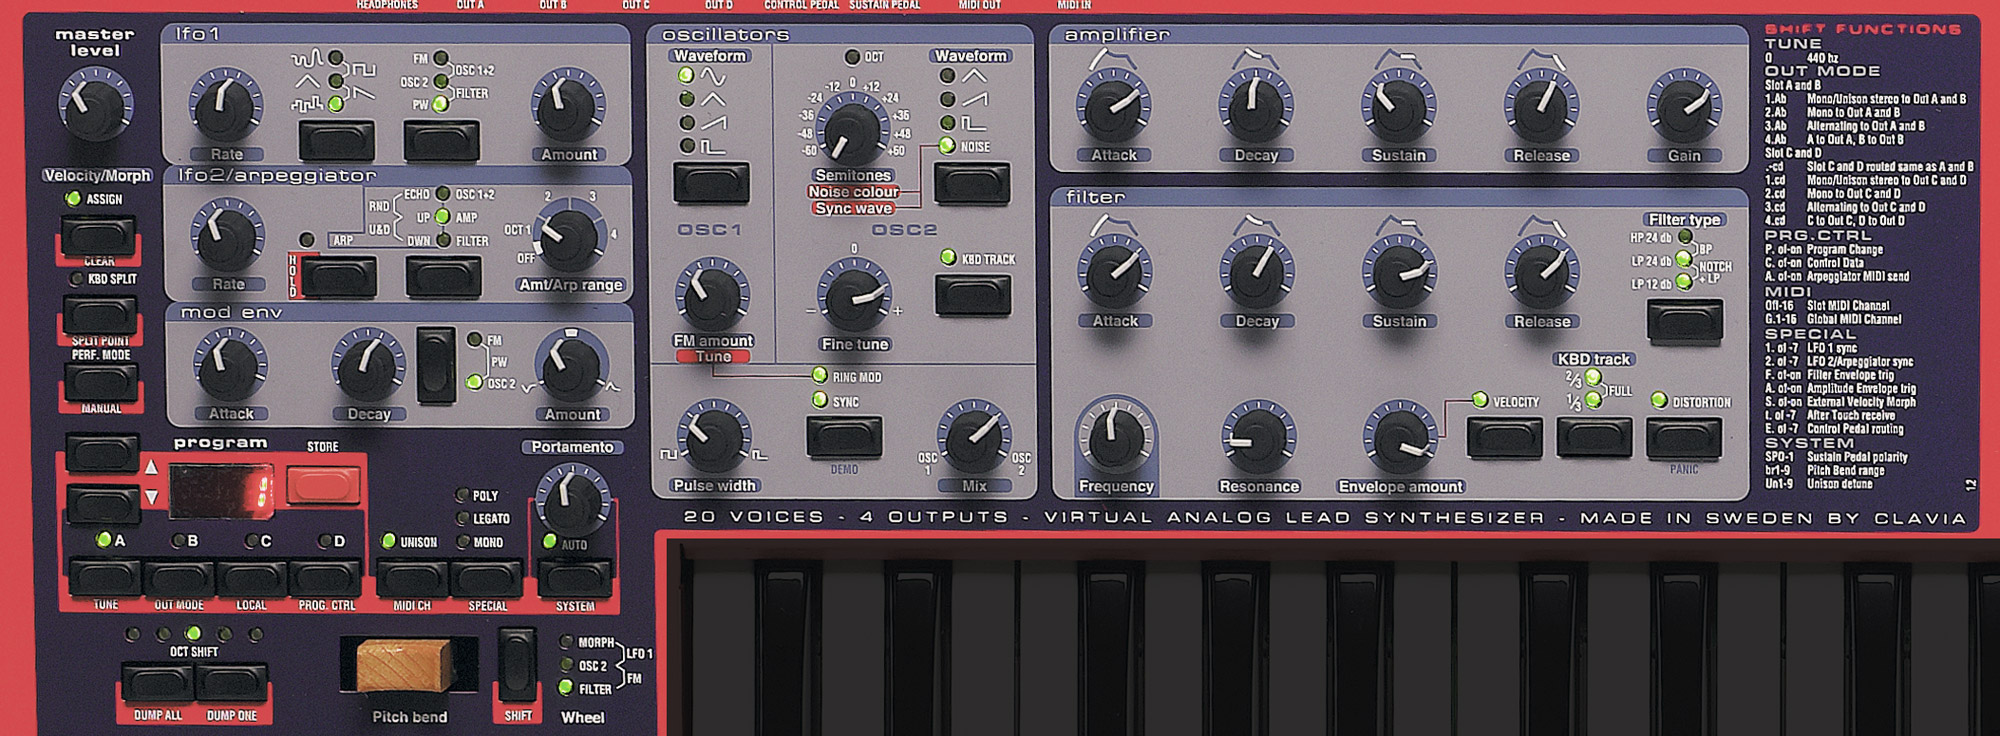 Alat Musik Virtual Analog Synthesizer Nord Lead 2x 1 Set Band And A Midi Controller In One Every Production Studio Needs Synth What Can Be More Reliable Than Dedicated Hardware That Allows Realtime